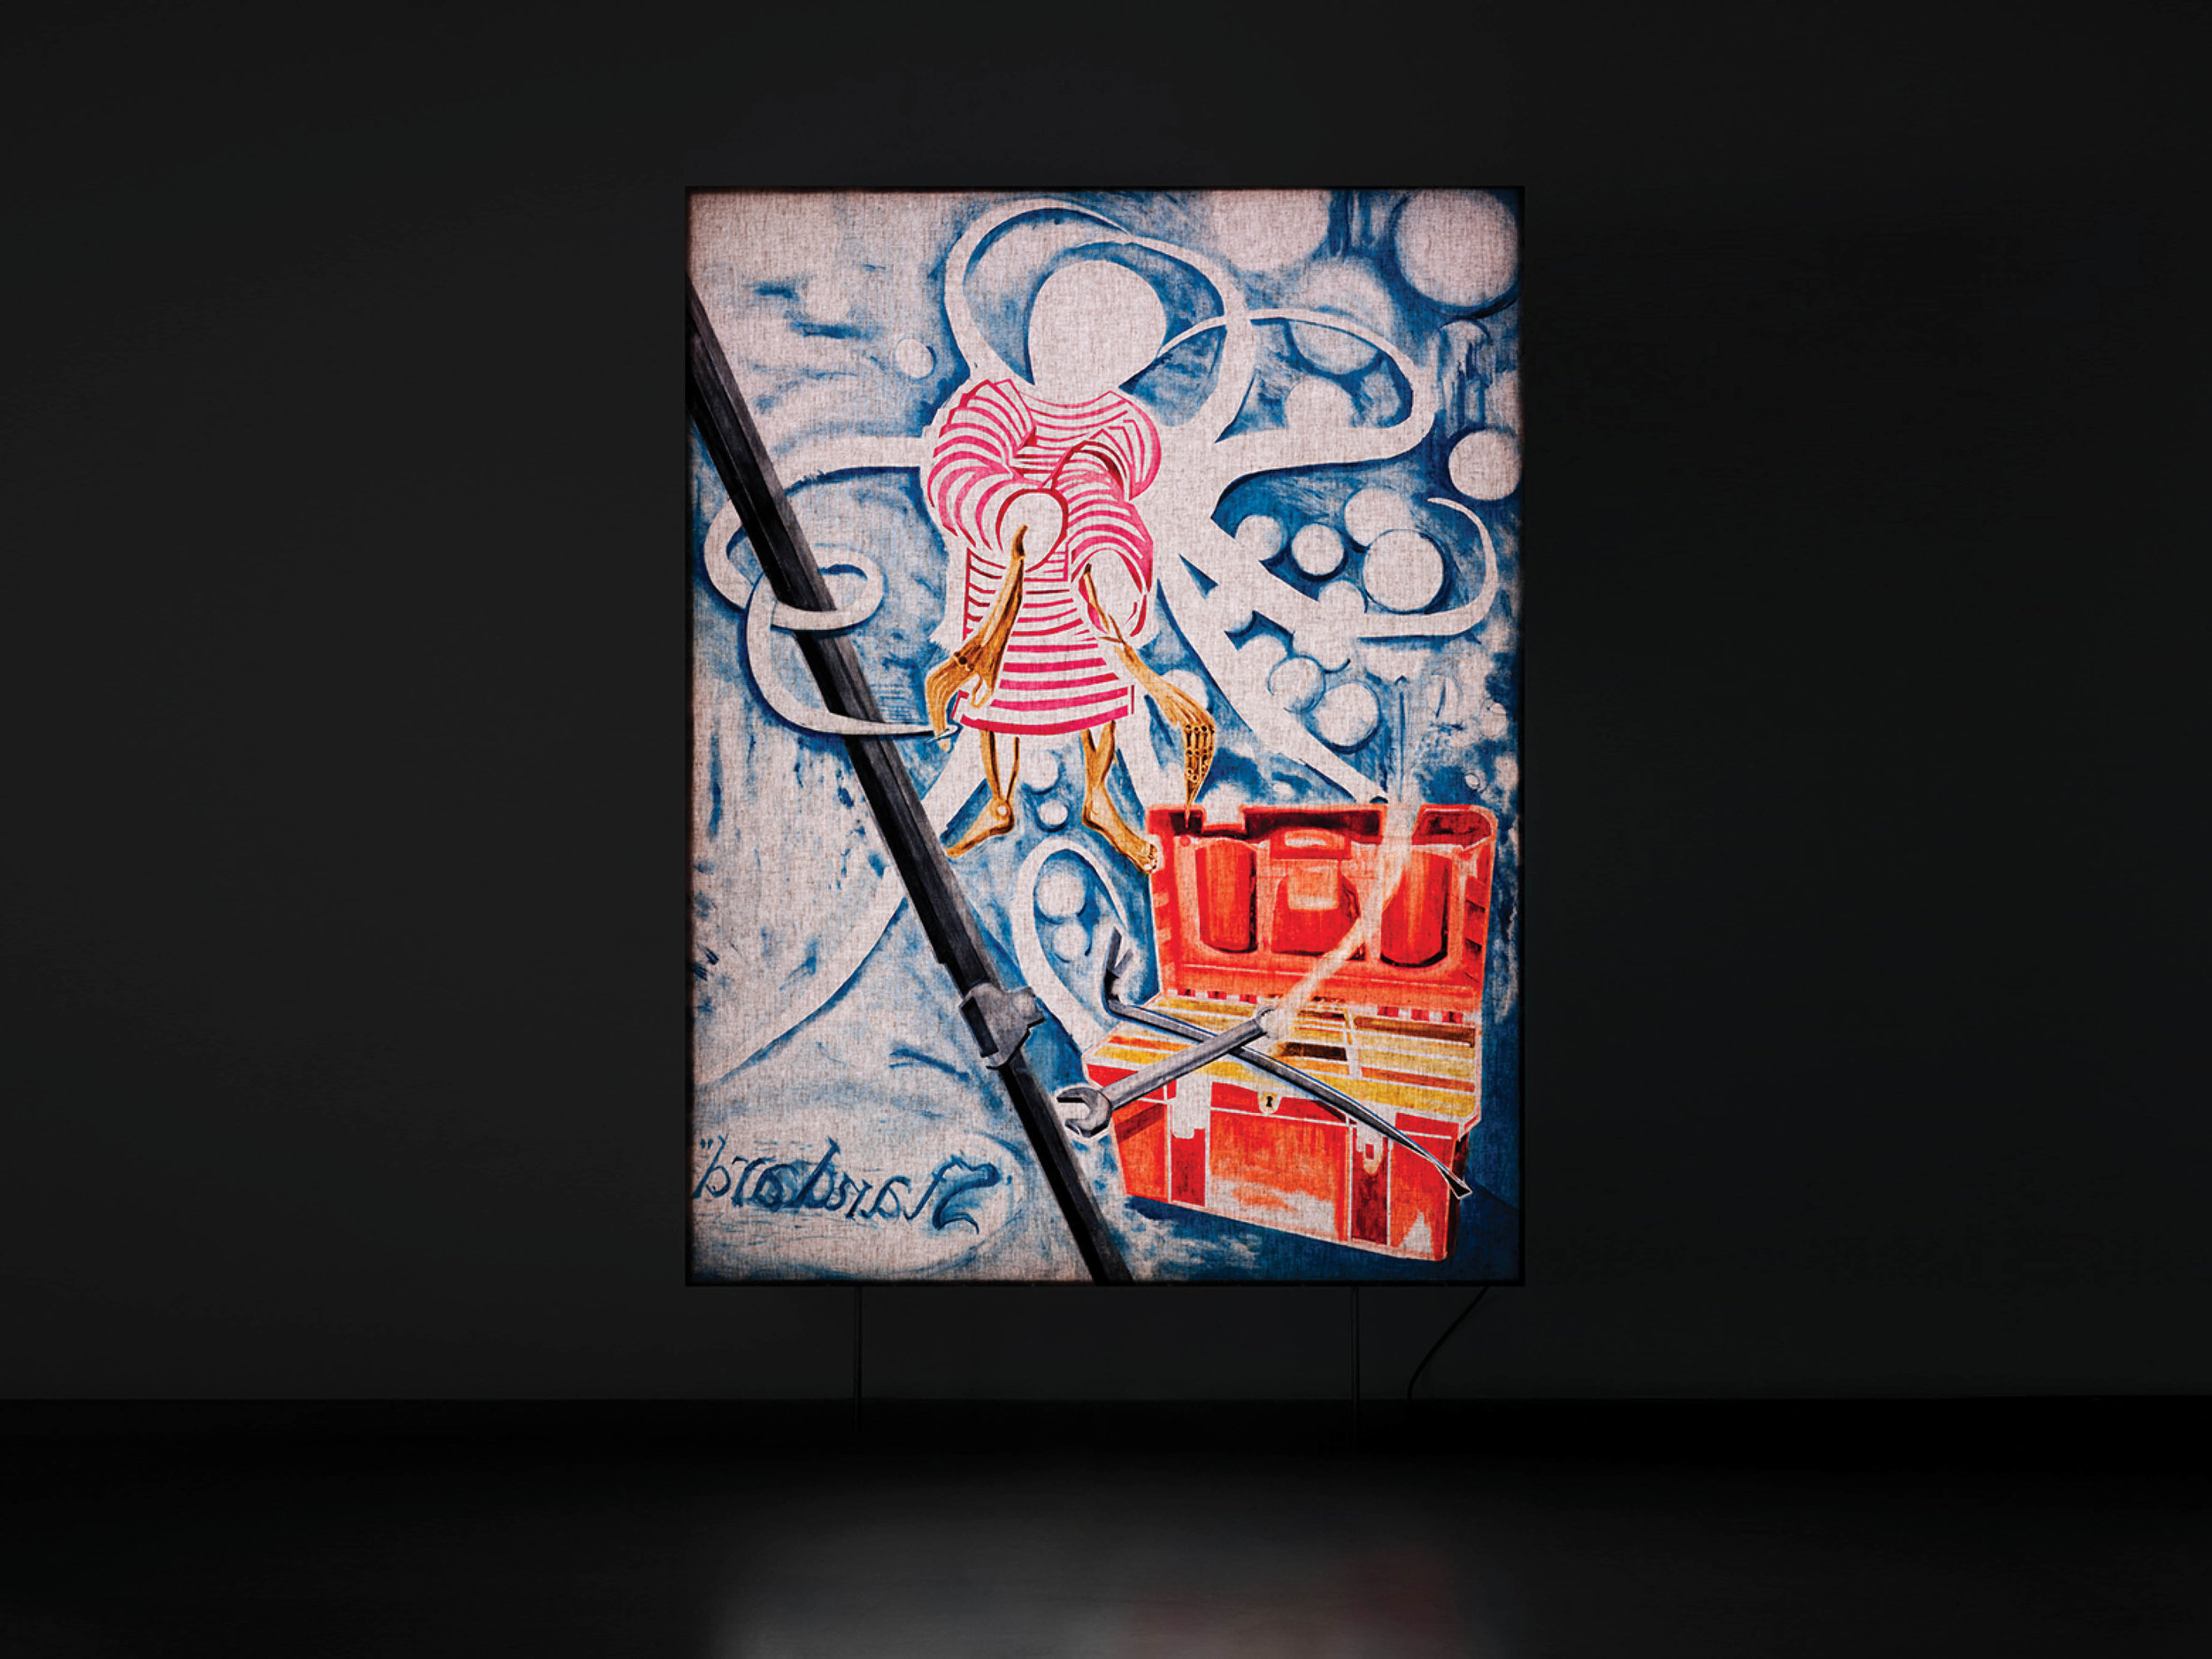 "Ulf Rollof   Cinema Painting Pink Pirate  2017 Oil on linen canvas. LED light box with aluminium box 207 x 157 x 10 cm  ""He is one of the bravest artists I know. This was obviously proven at his recent Moderna Museet exhibition in Malmö. He has a way of showing that art is urgent and literally lifesaving. His sculptures from the 90s are shaking, almost shocking. This one shows another side, the playful and joyous that denounces death.""   Available"